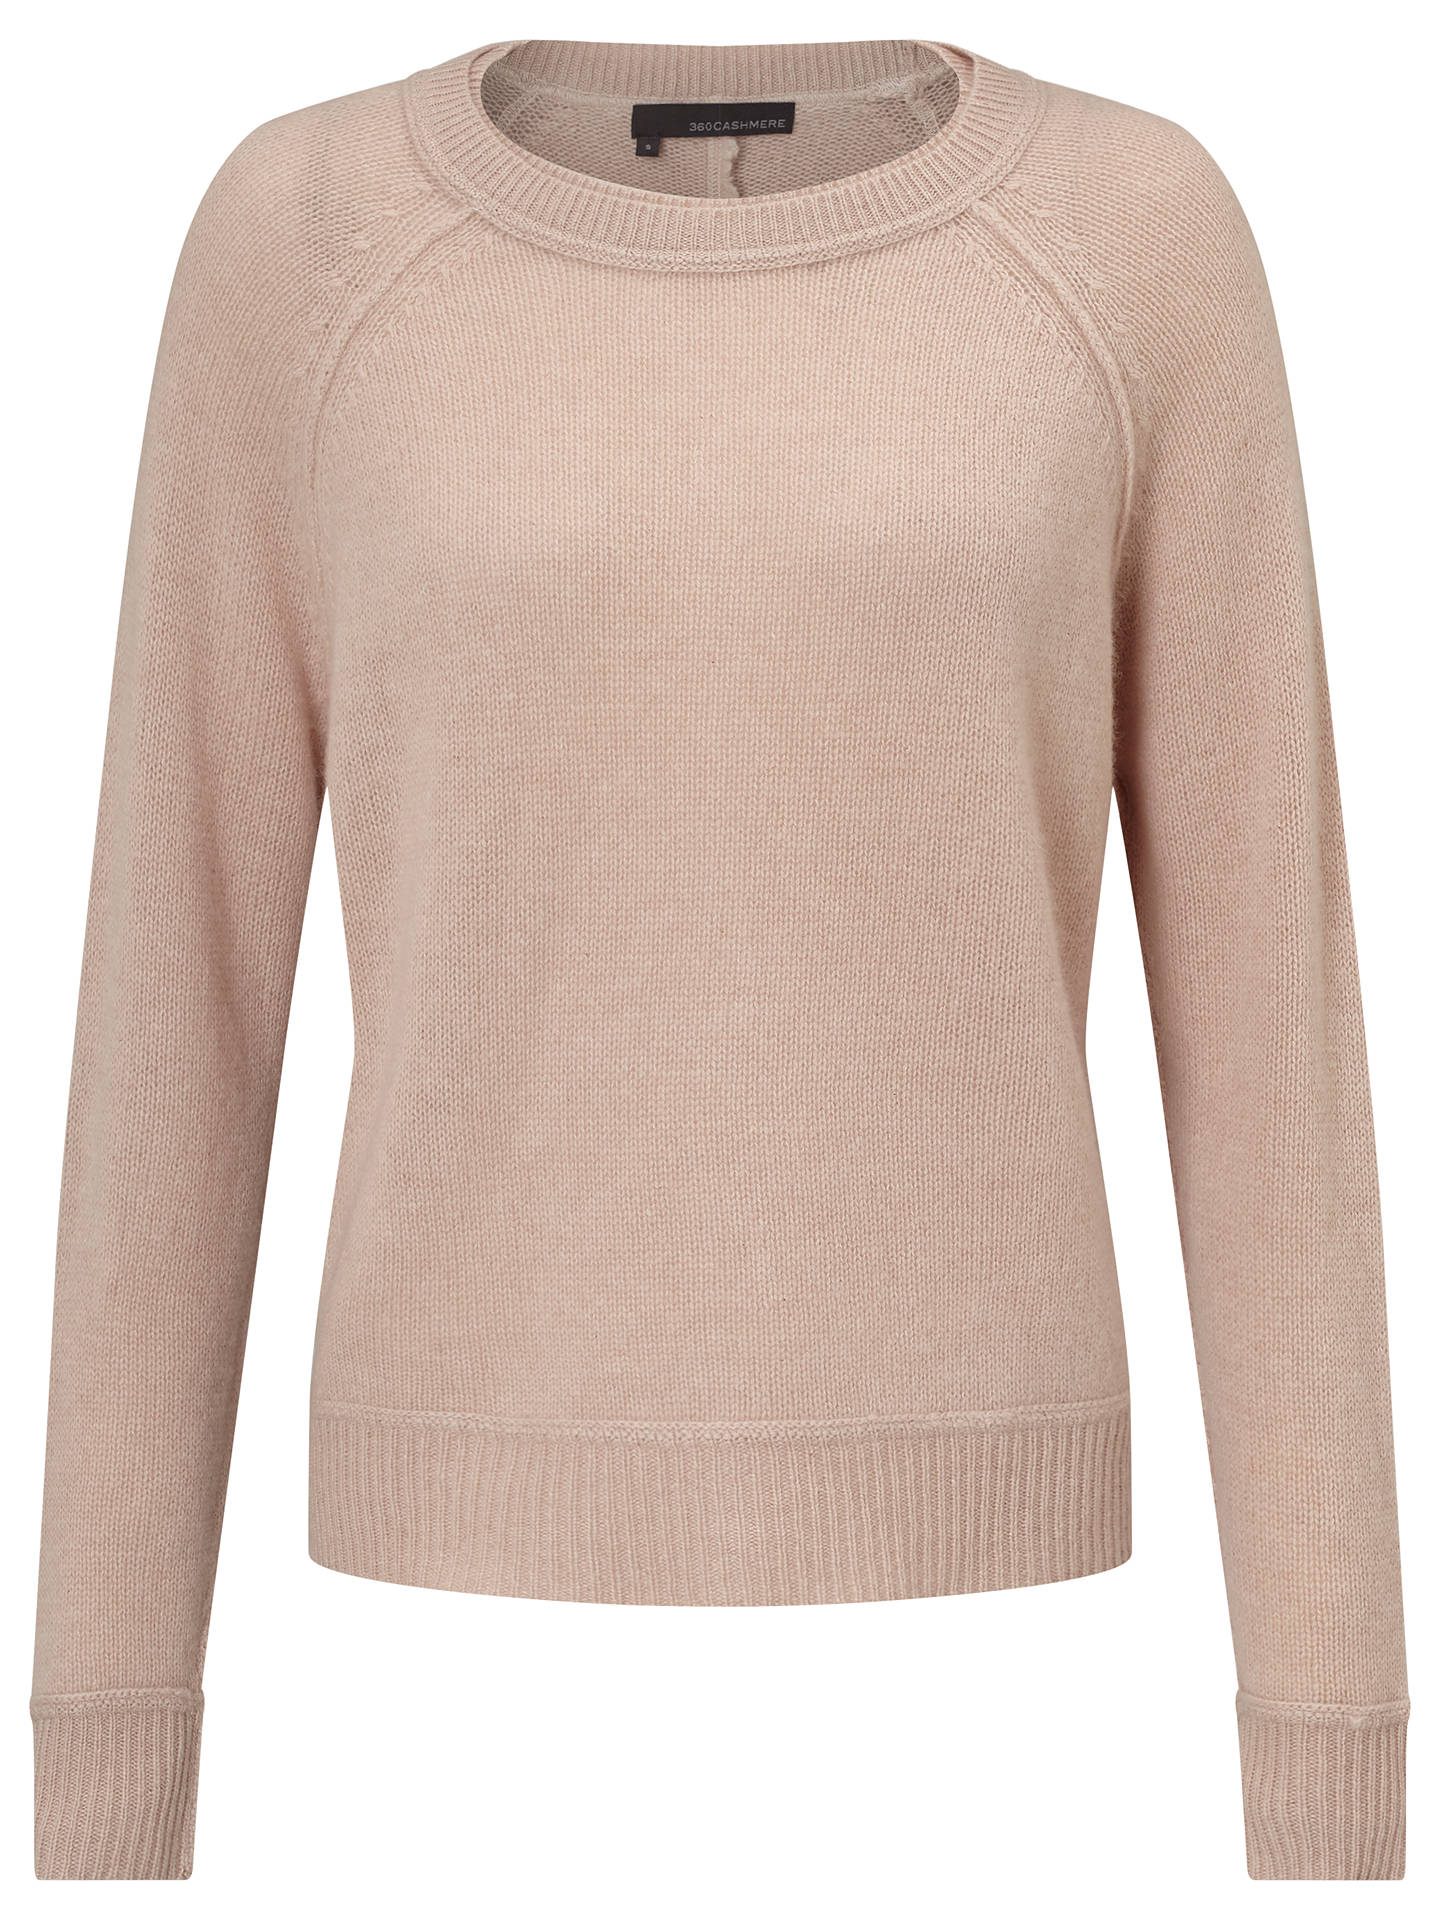 2c5760a835c 360 Sweater Hartley Cashmere Jumper at John Lewis & Partners